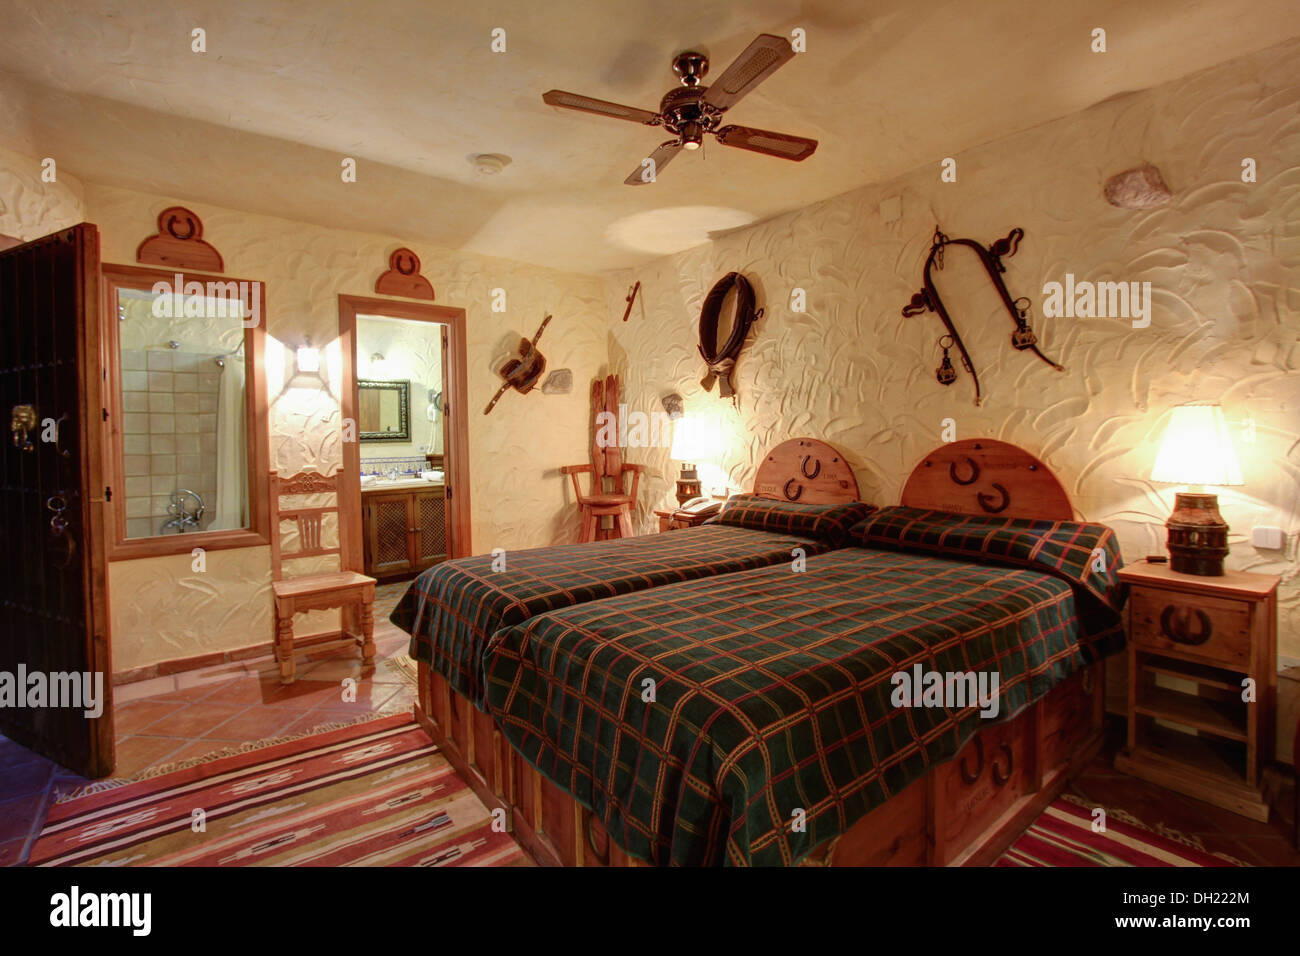 Electric Ceiling Fan Above Wooden Bed With Brown Checked Cover In Spanish  Bedroom With Rough Textured Walls And Door To En Suite